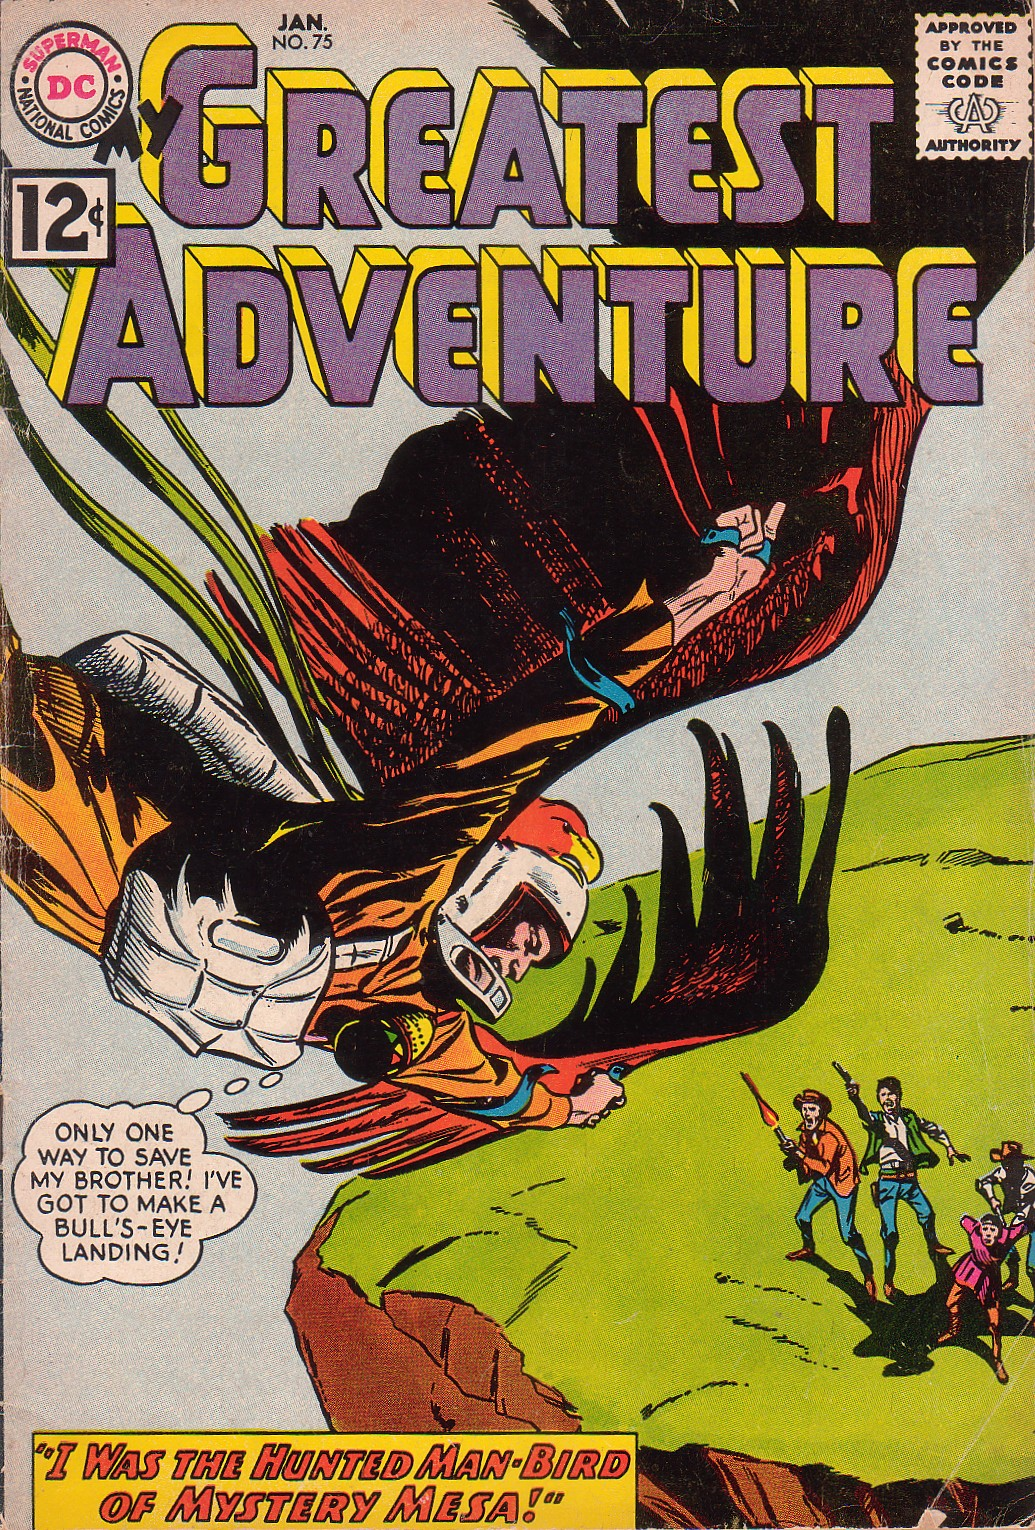 My Greatest Adventure (1955) issue 75 - Page 1